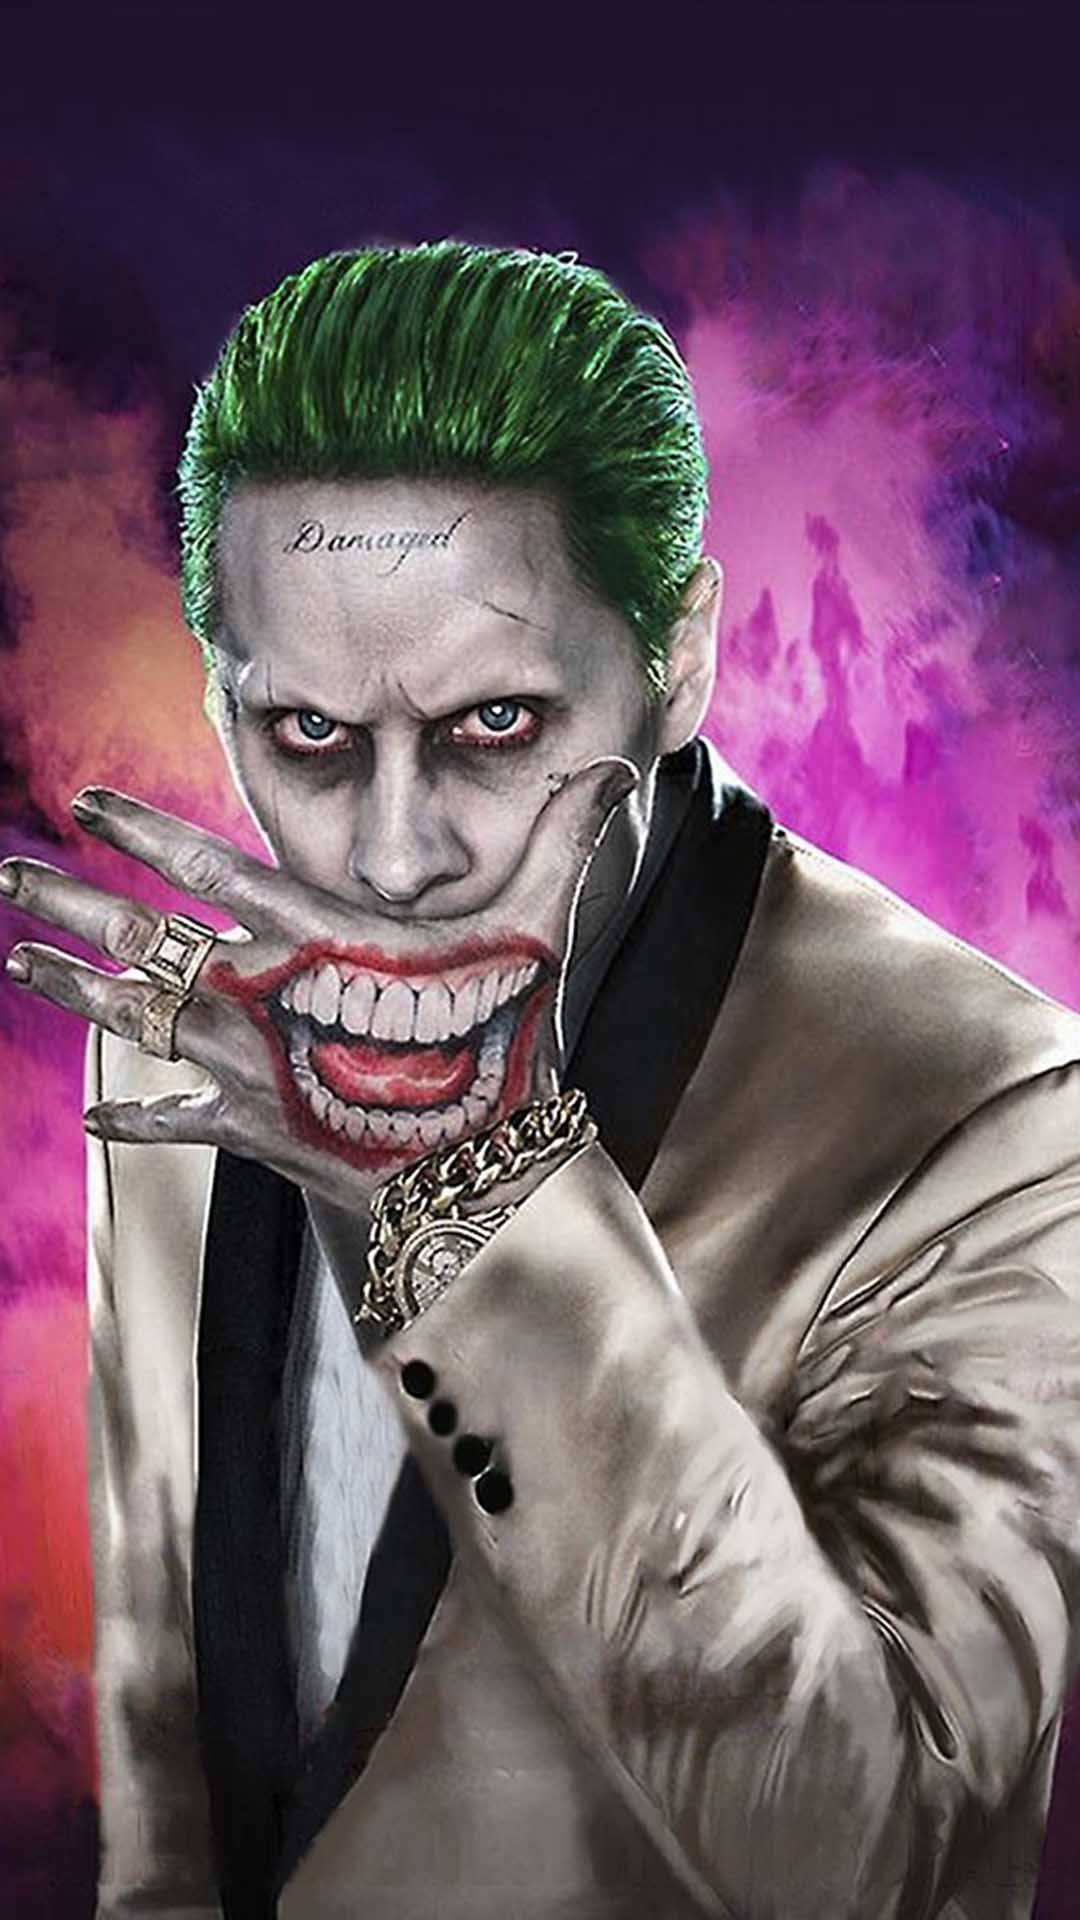 Joker Wallpaper For Iphone 11 Pro Max X 8 7 6 Free Download On 3wallpapers